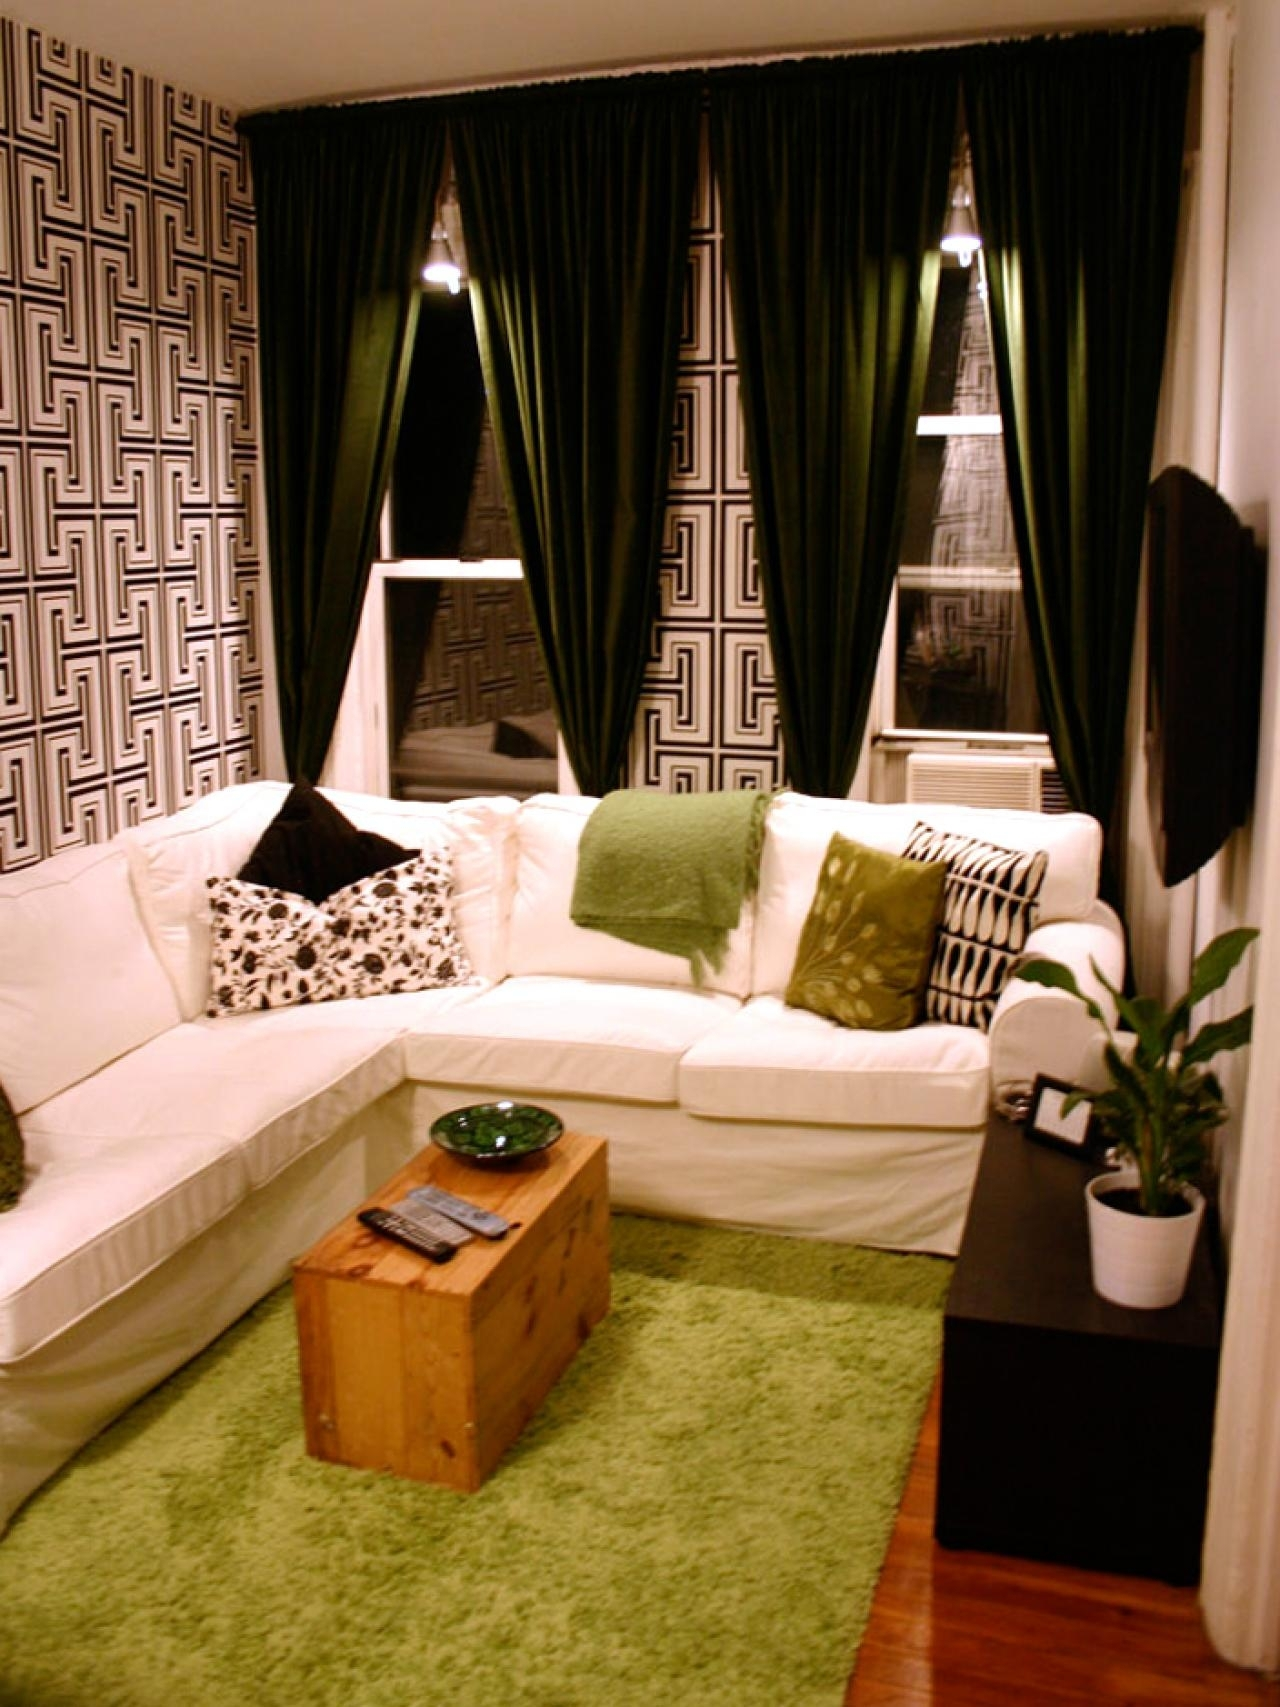 12 Design Ideas For Your Studio Apartment   Hgtv's Decorating pertaining to Best Layout For Forest Garden Apartments Design Ideas